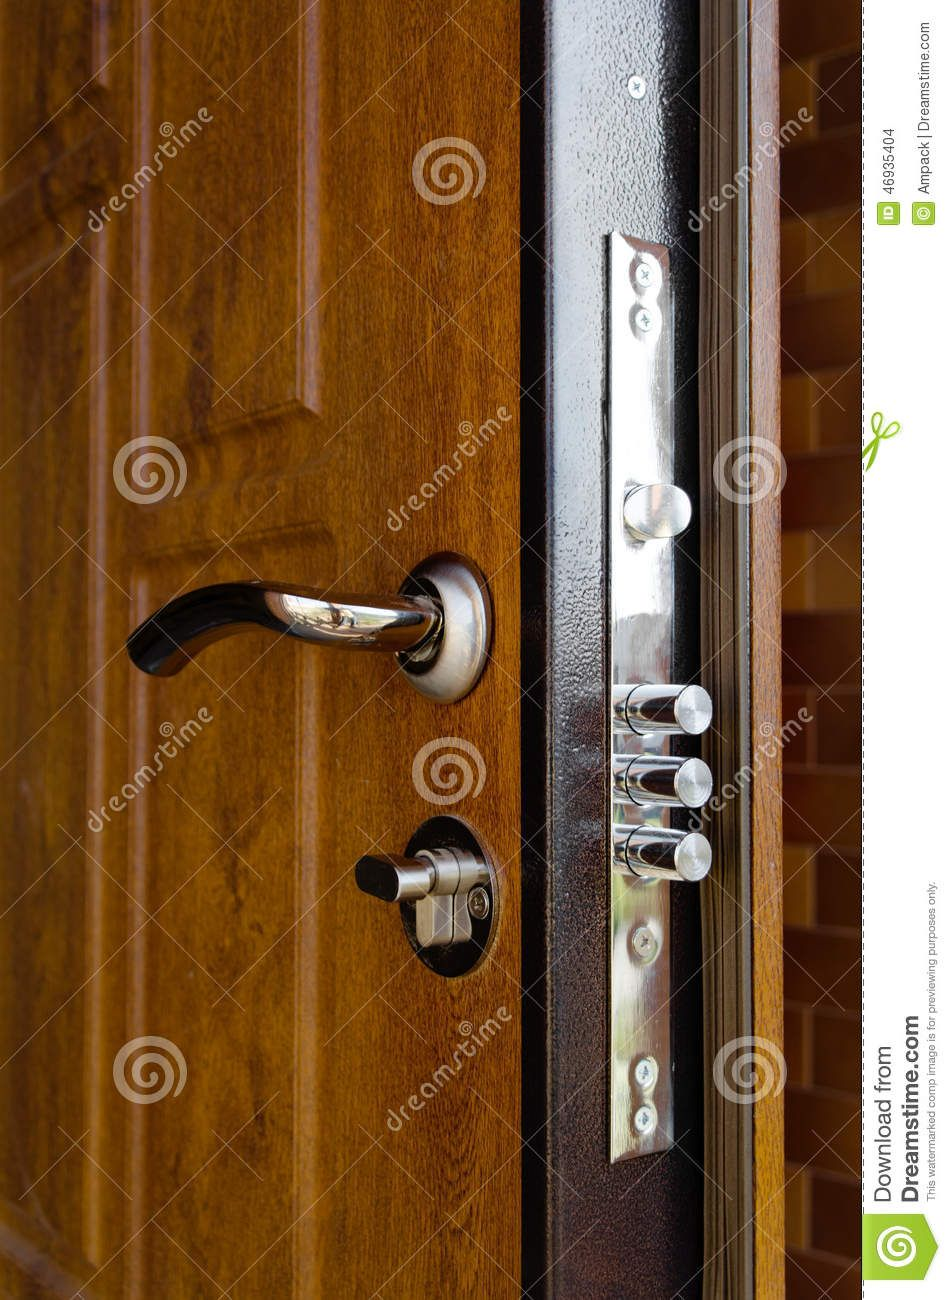 Triple cylinders new high security lock installed wooden for Door handle with lock